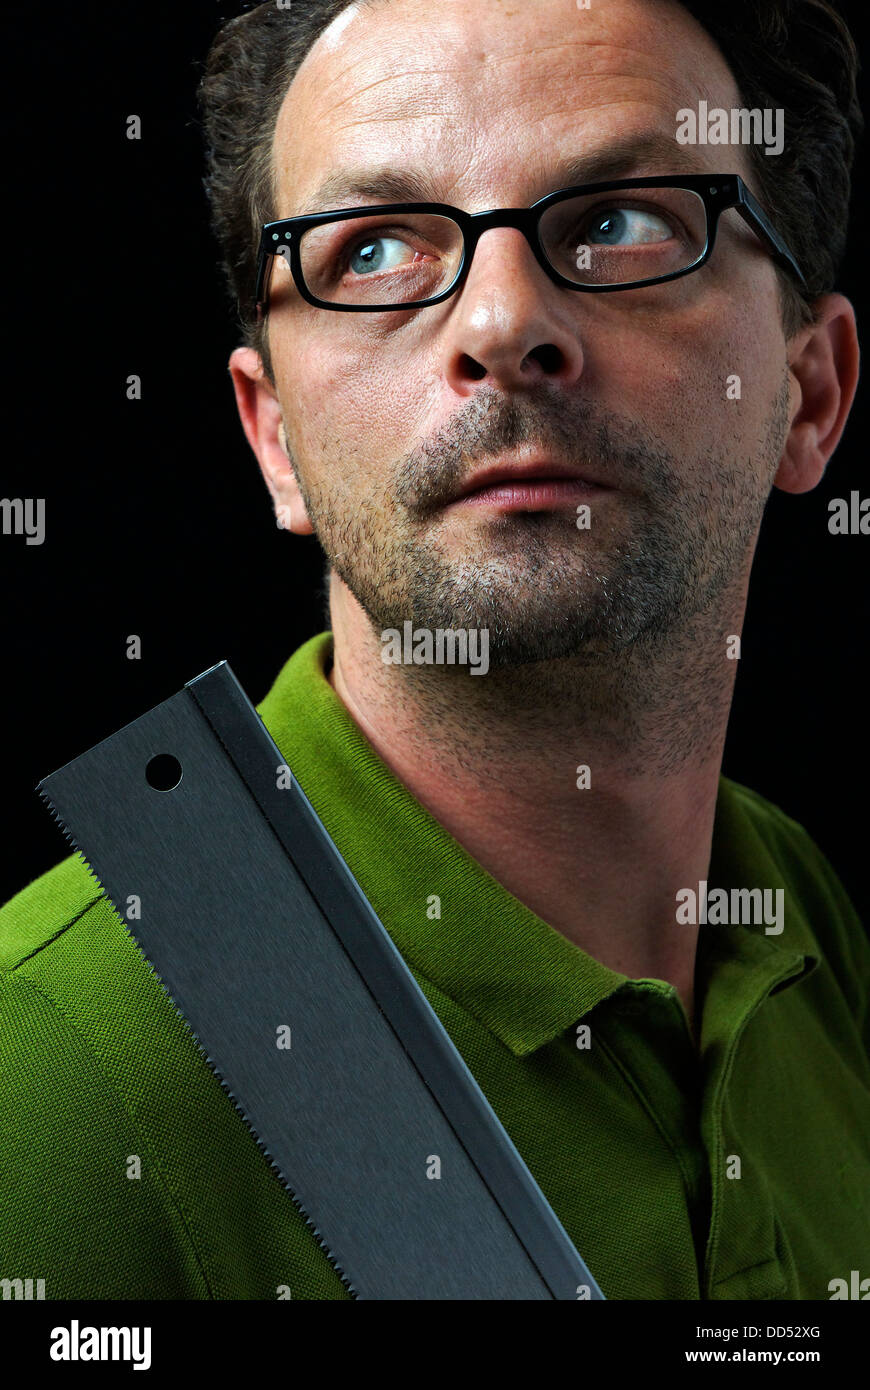 Man with a saw in his hand - Stock Image